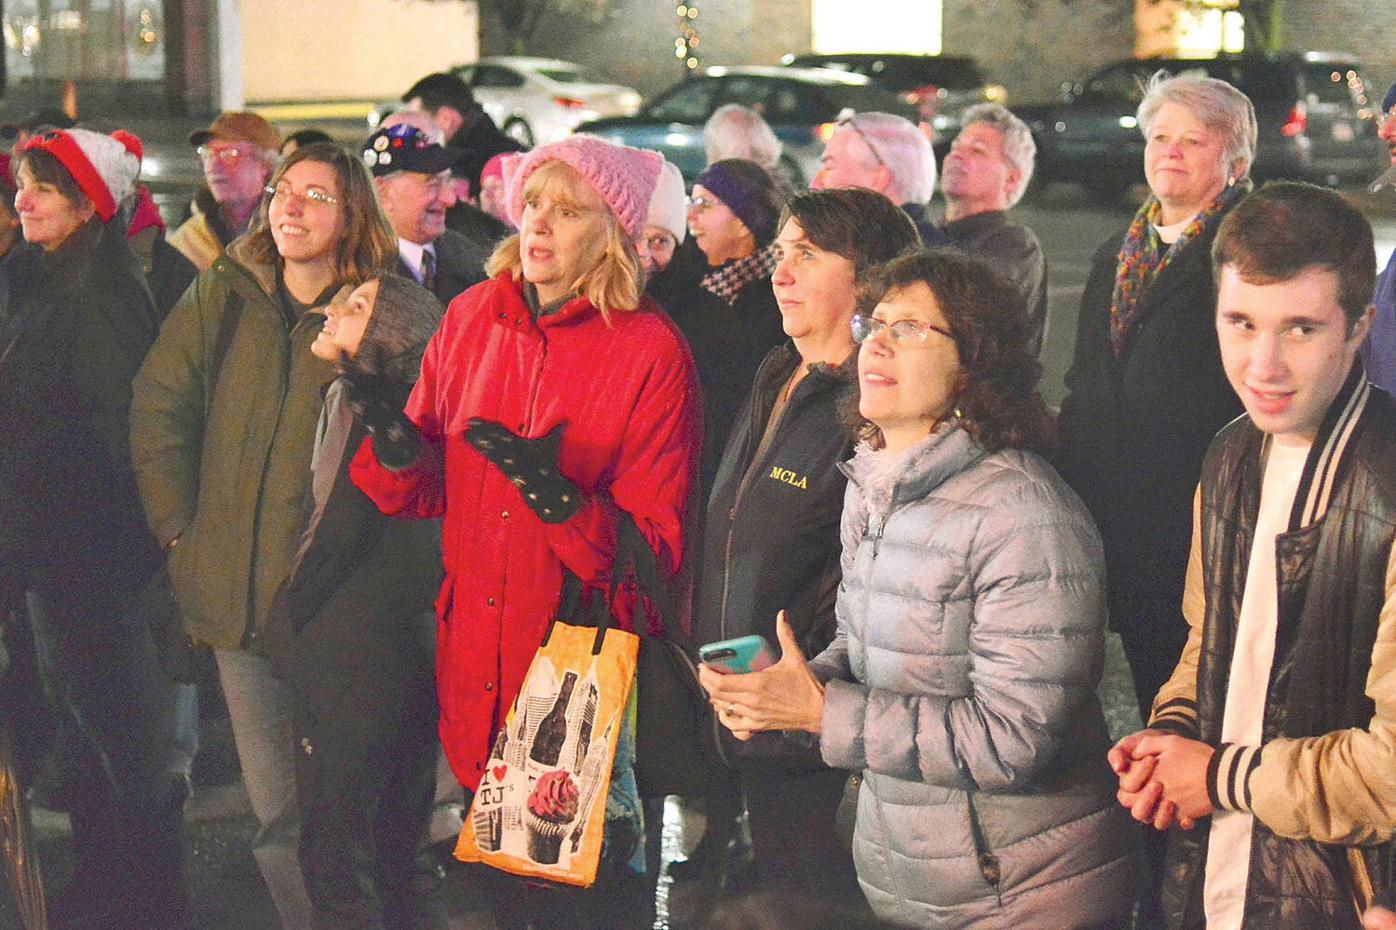 A first for festival of lights in North Adams: A public menorah for Hanukkah